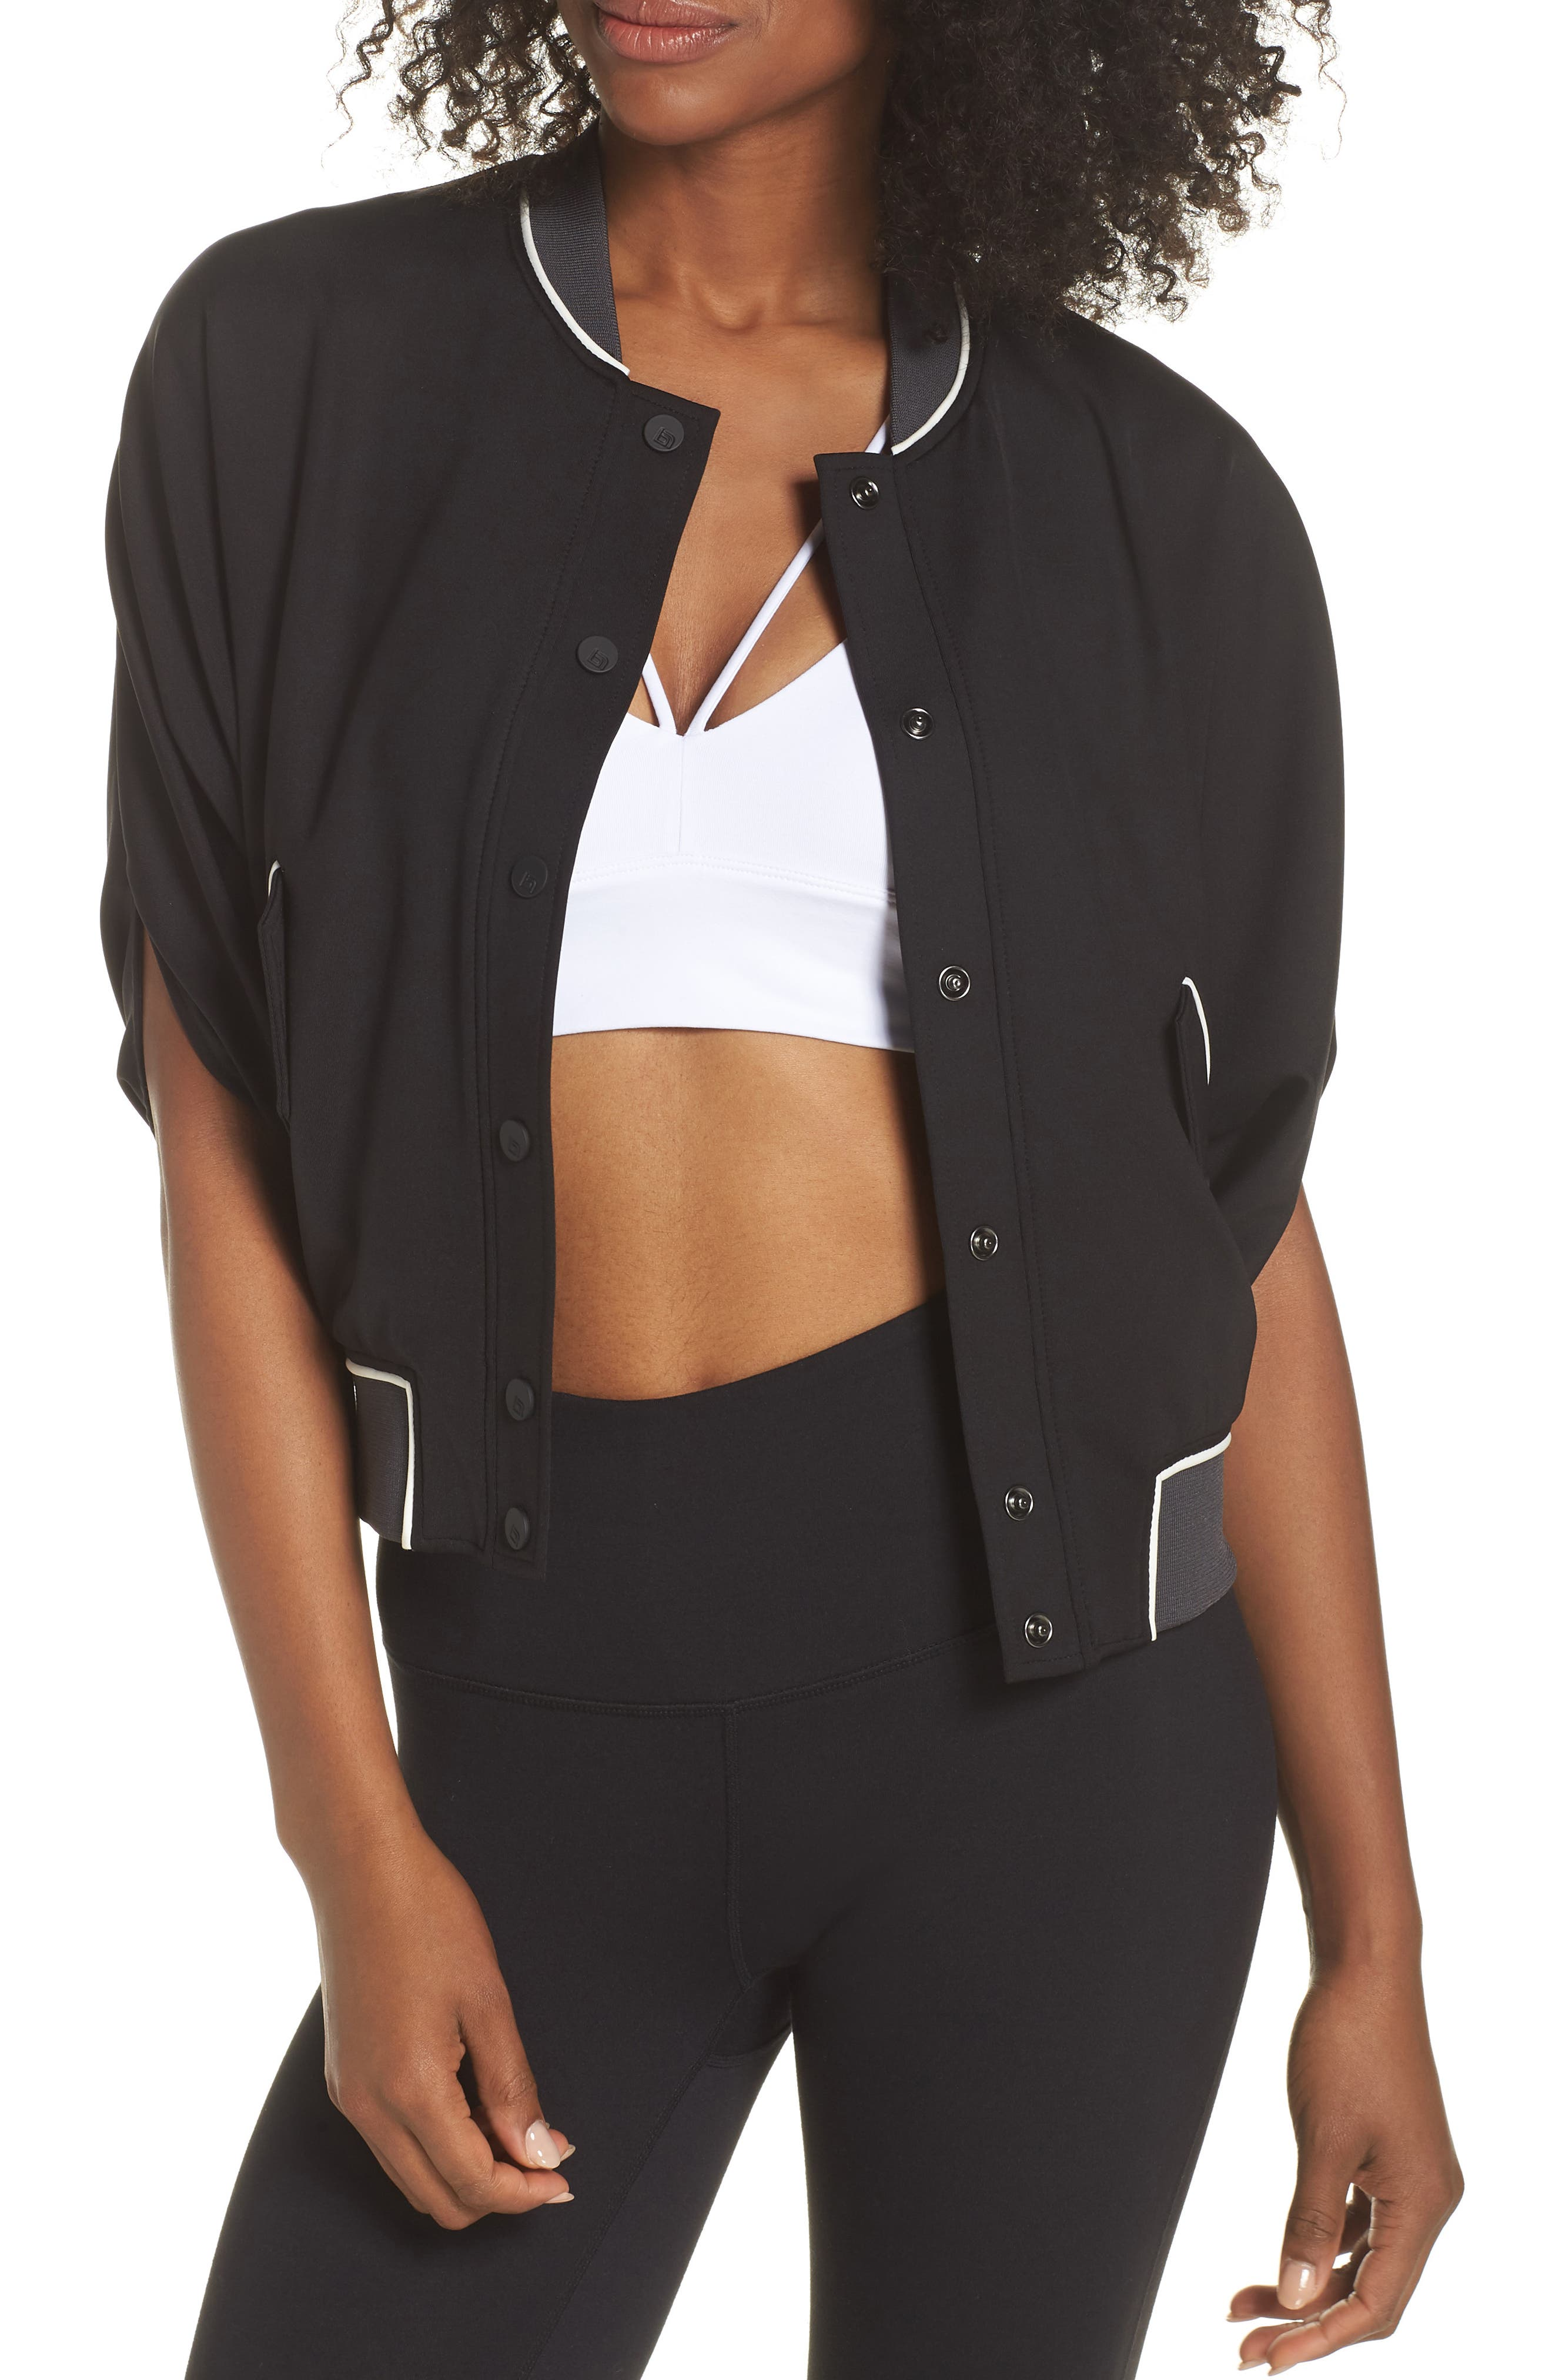 Butterfly Bomber Jacket,                             Main thumbnail 1, color,                             009